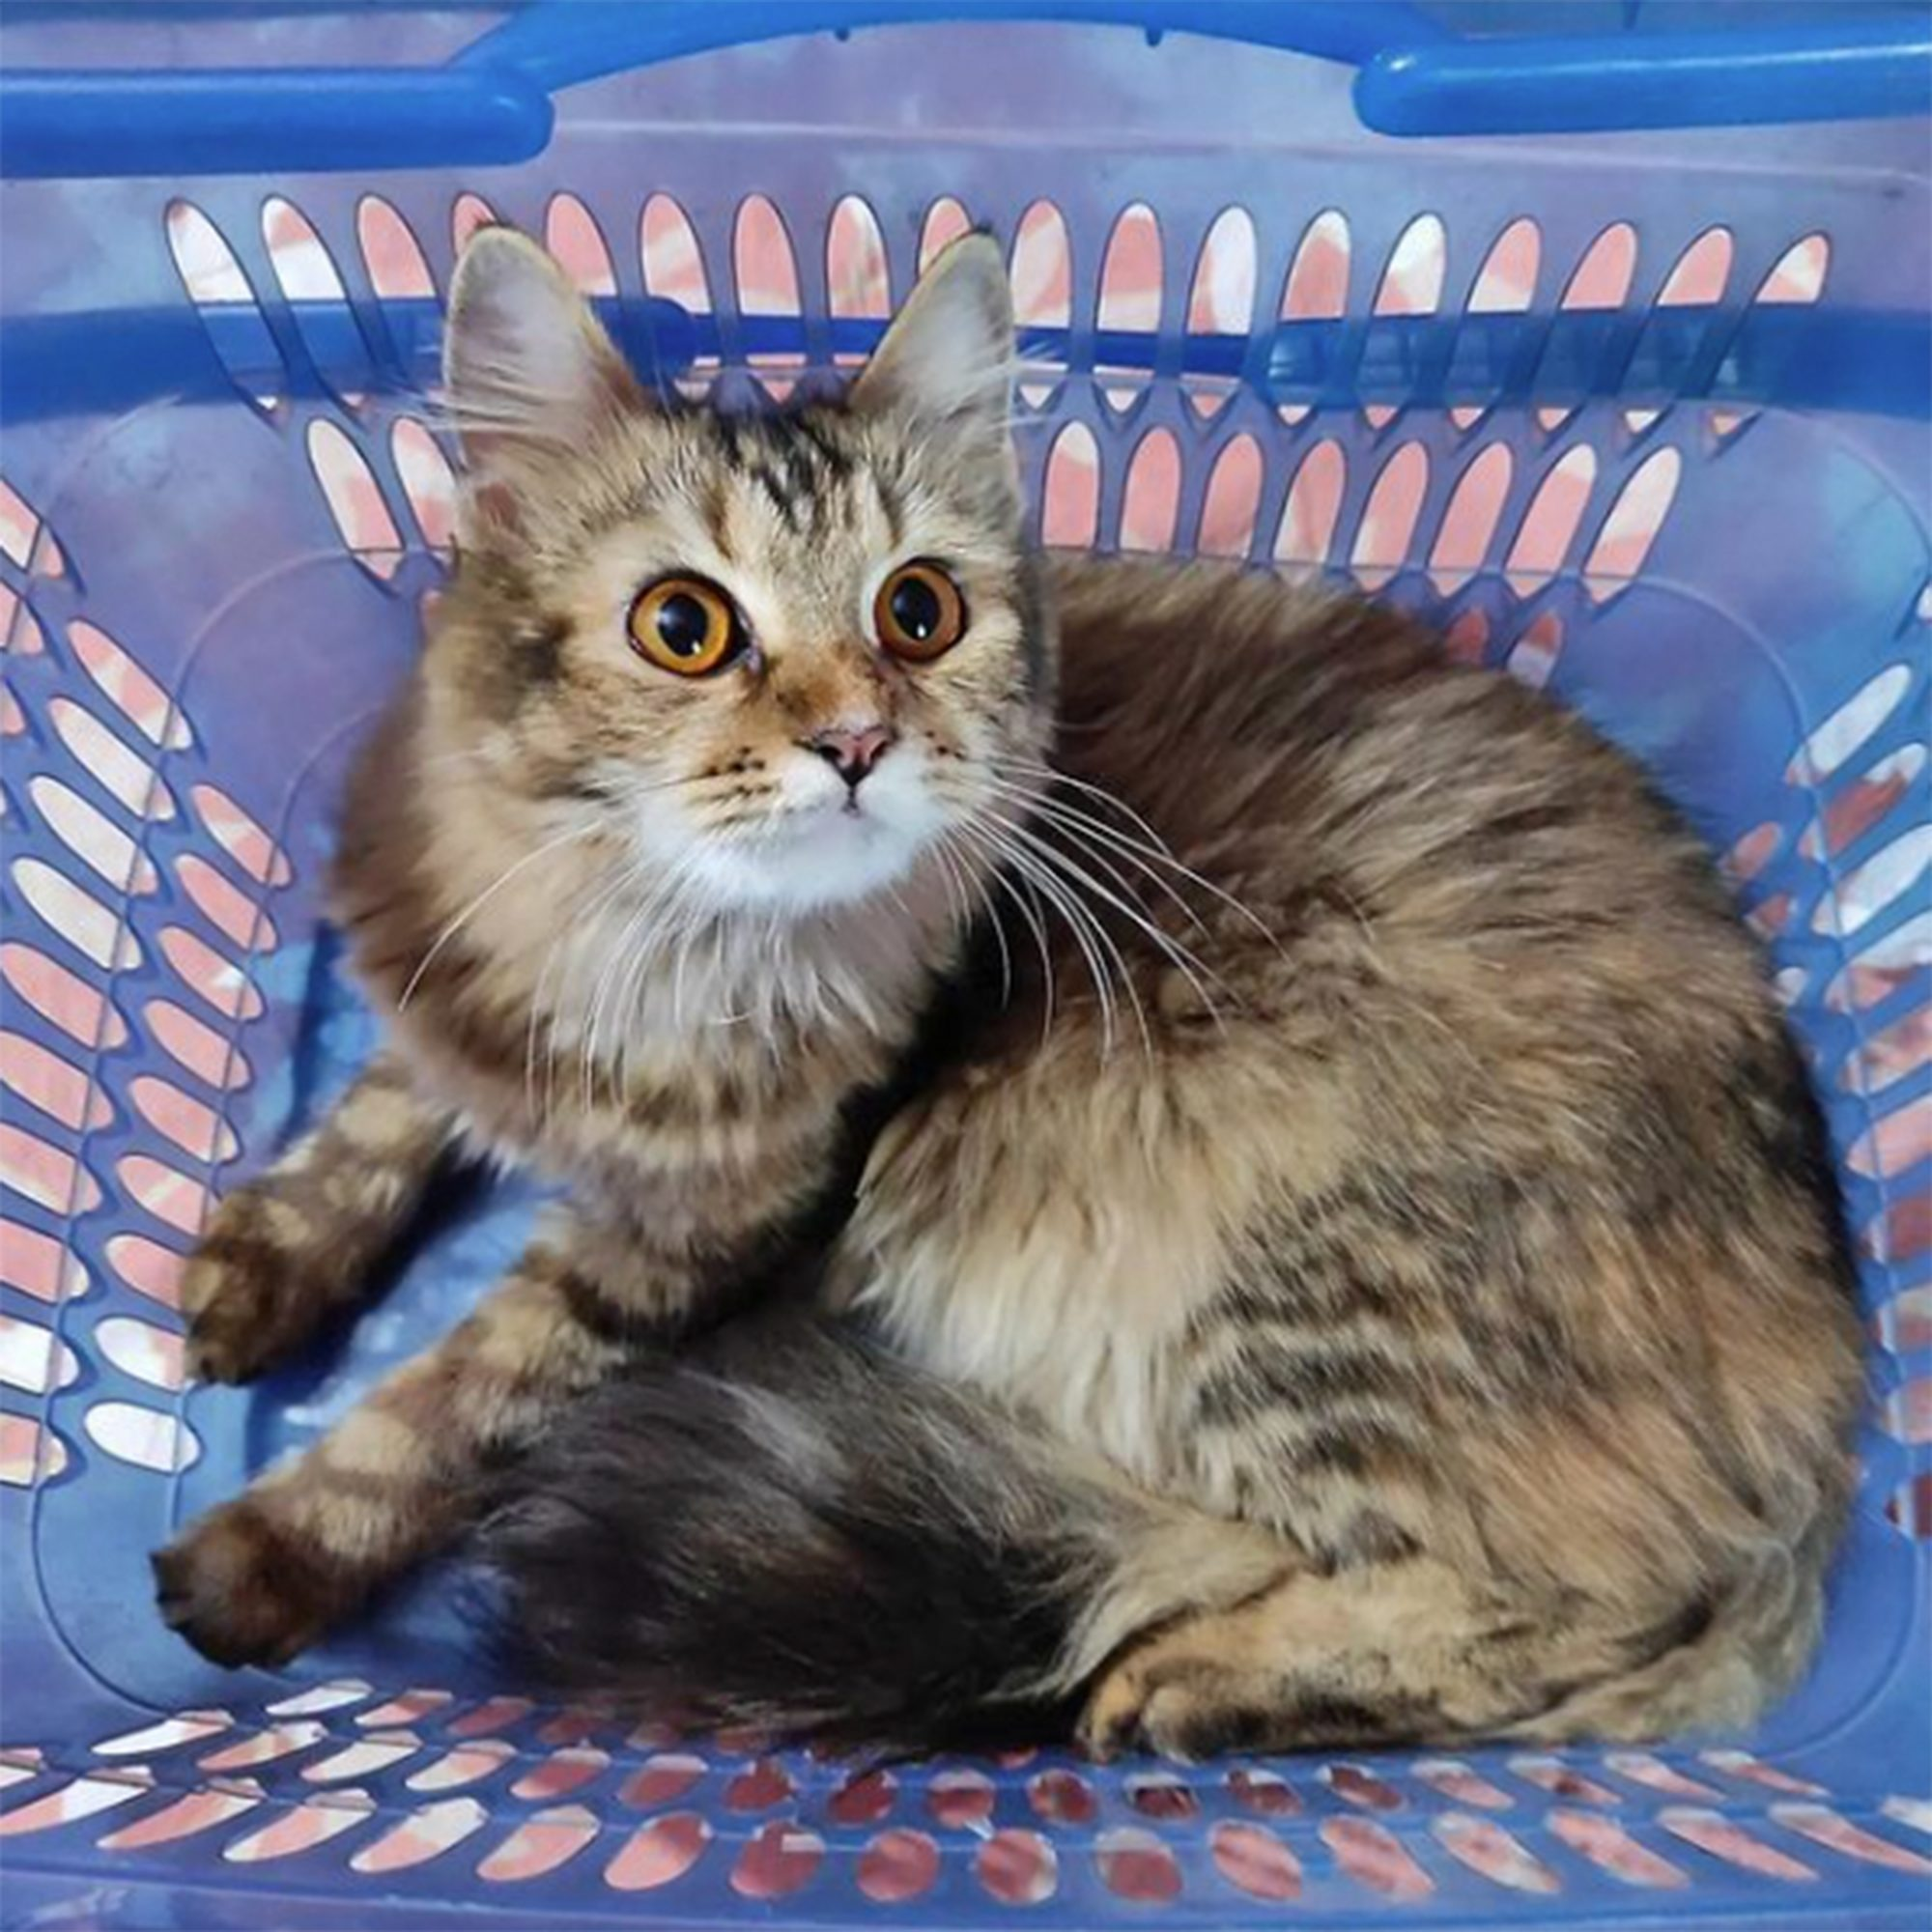 grey tabby cat curled up in blue plastic basket